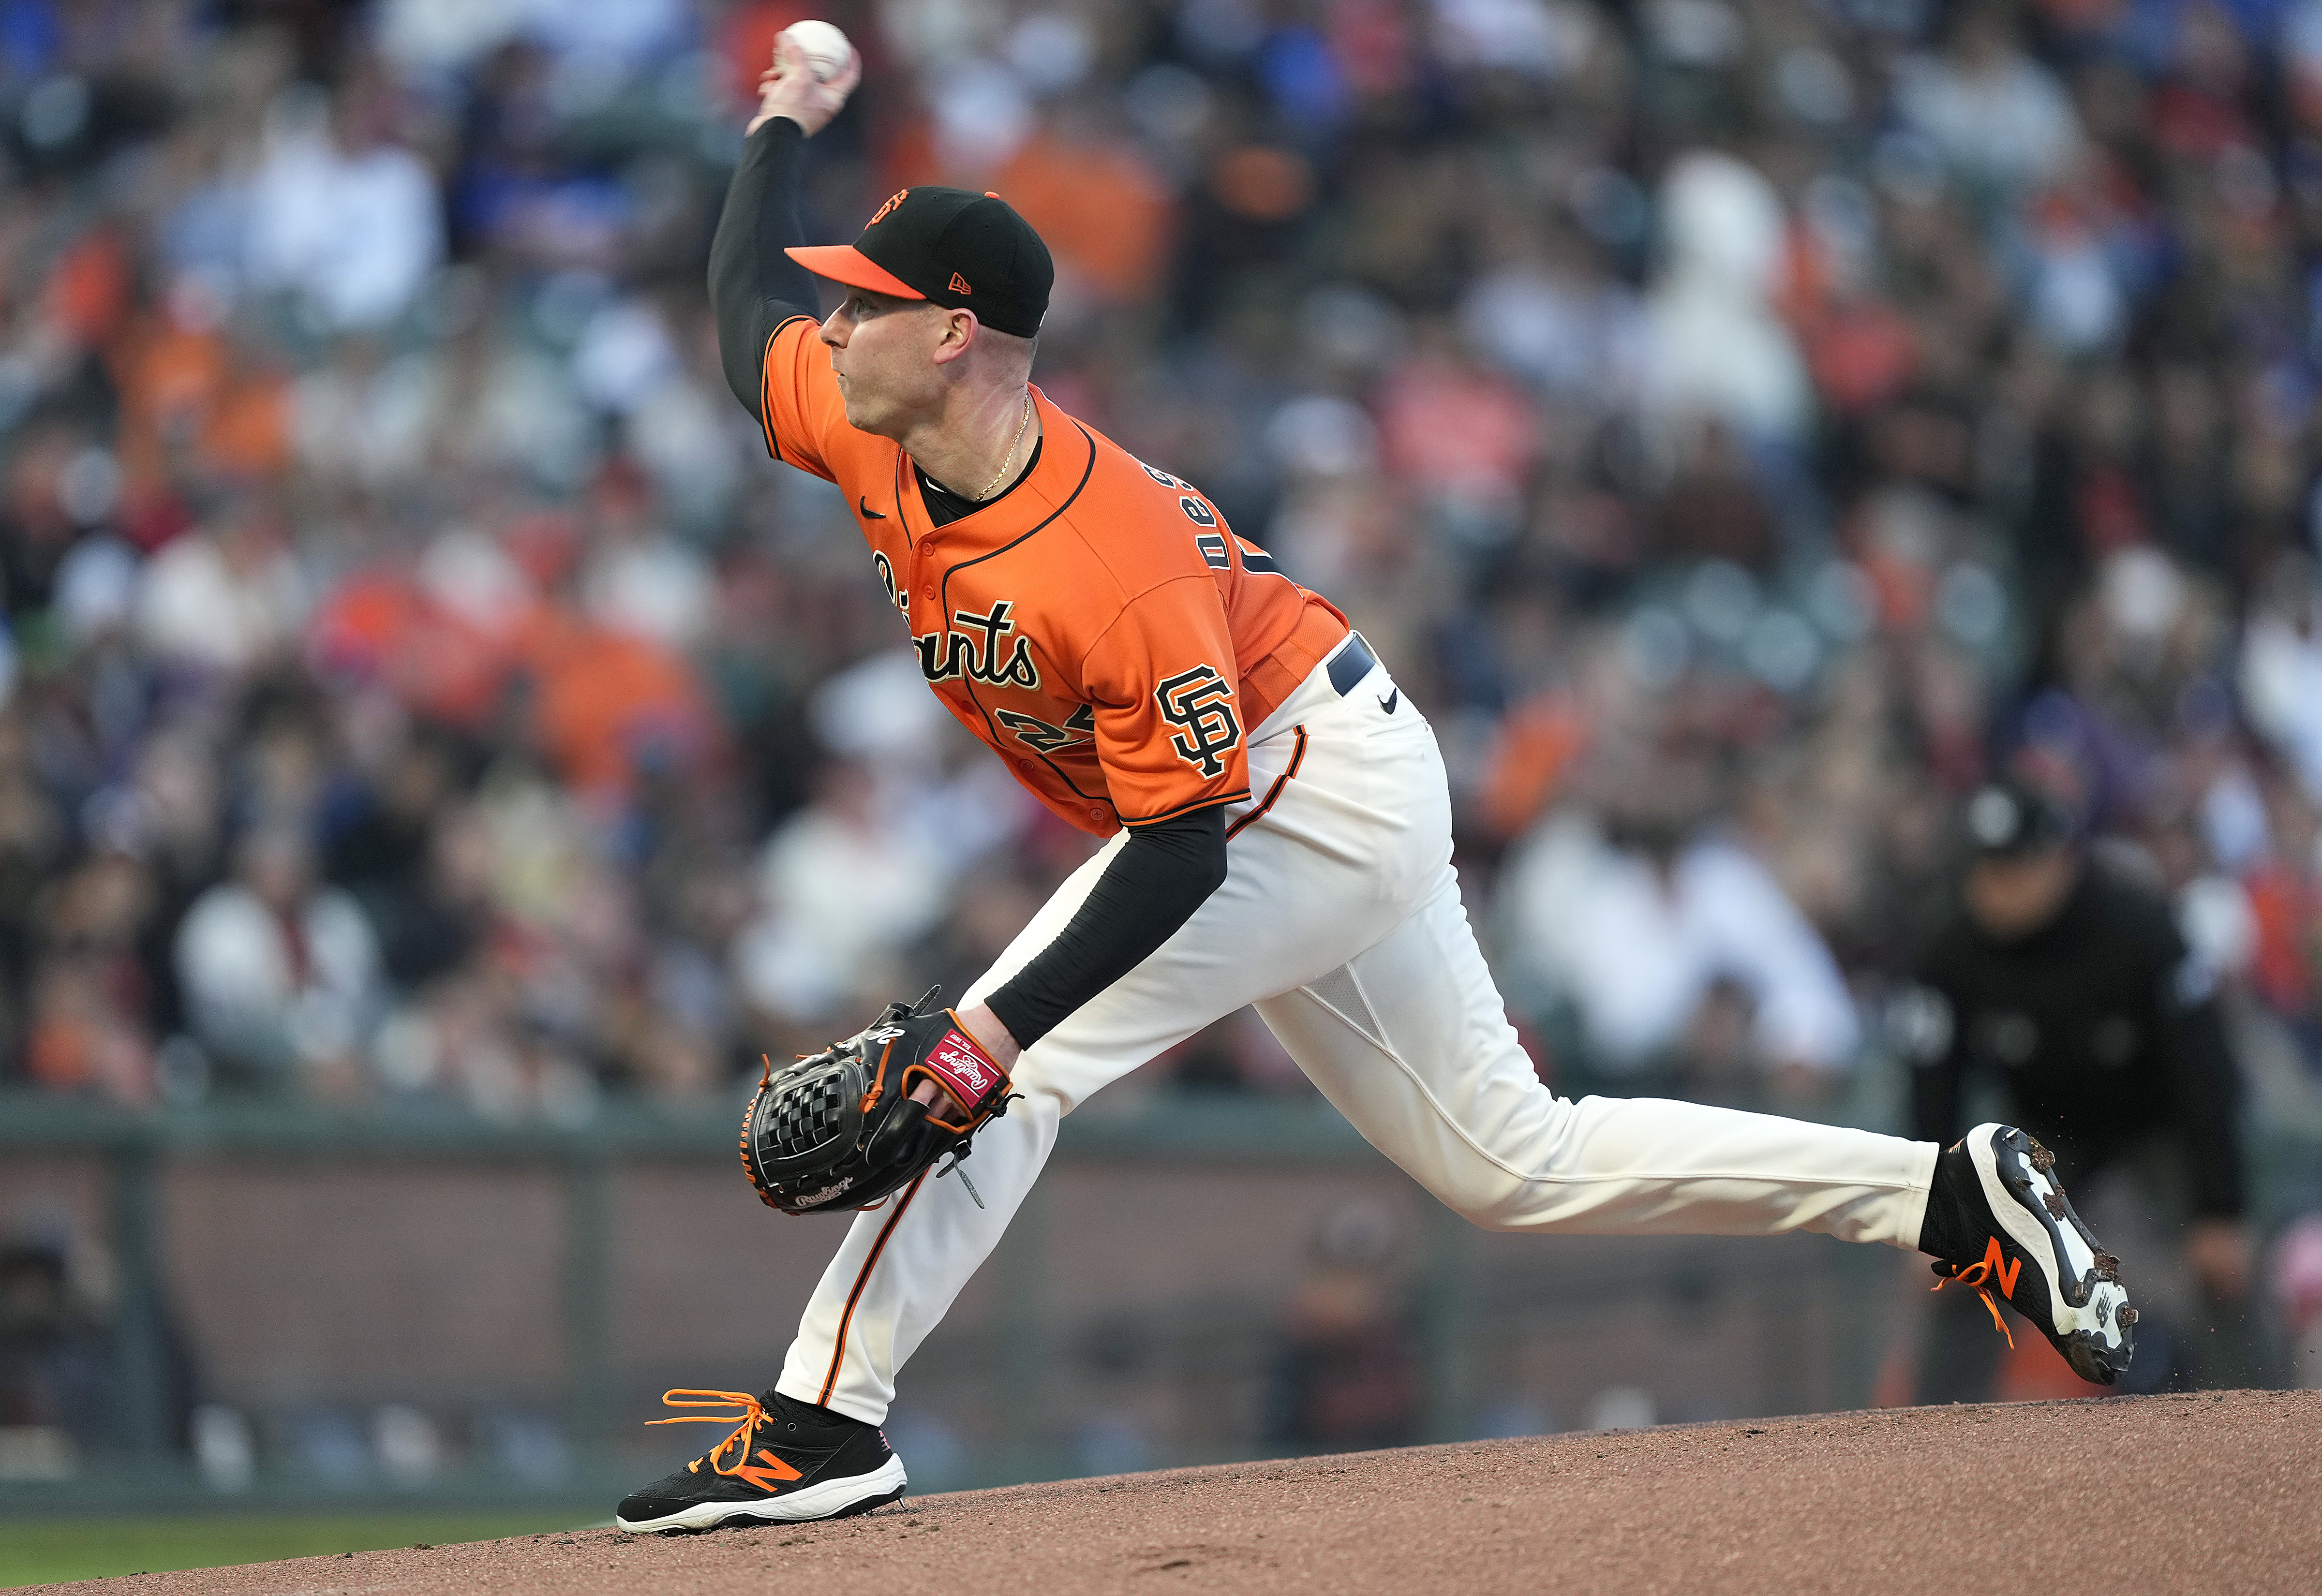 Anthony DeSclafani #26 of the San Francisco Giants pitches against the Los Angeles Dodgers in the top of the first inning at Oracle Park on September 03, 2021 in San Francisco, California.